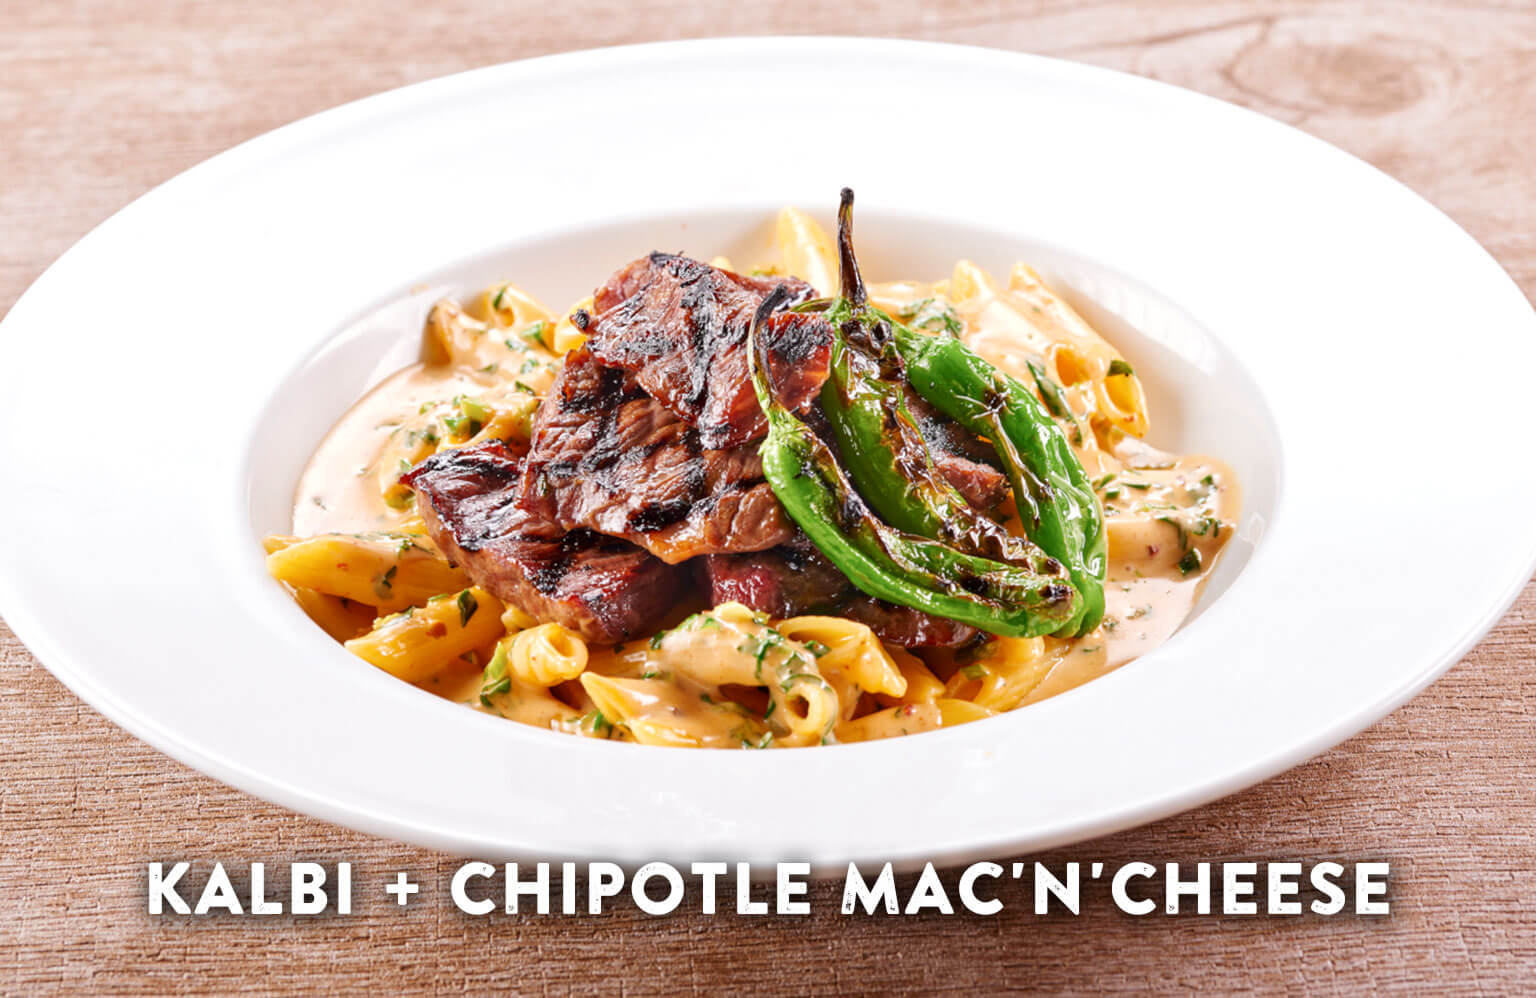 BBQ KALBI + CHIPOTLE MAC'N'CHEESE